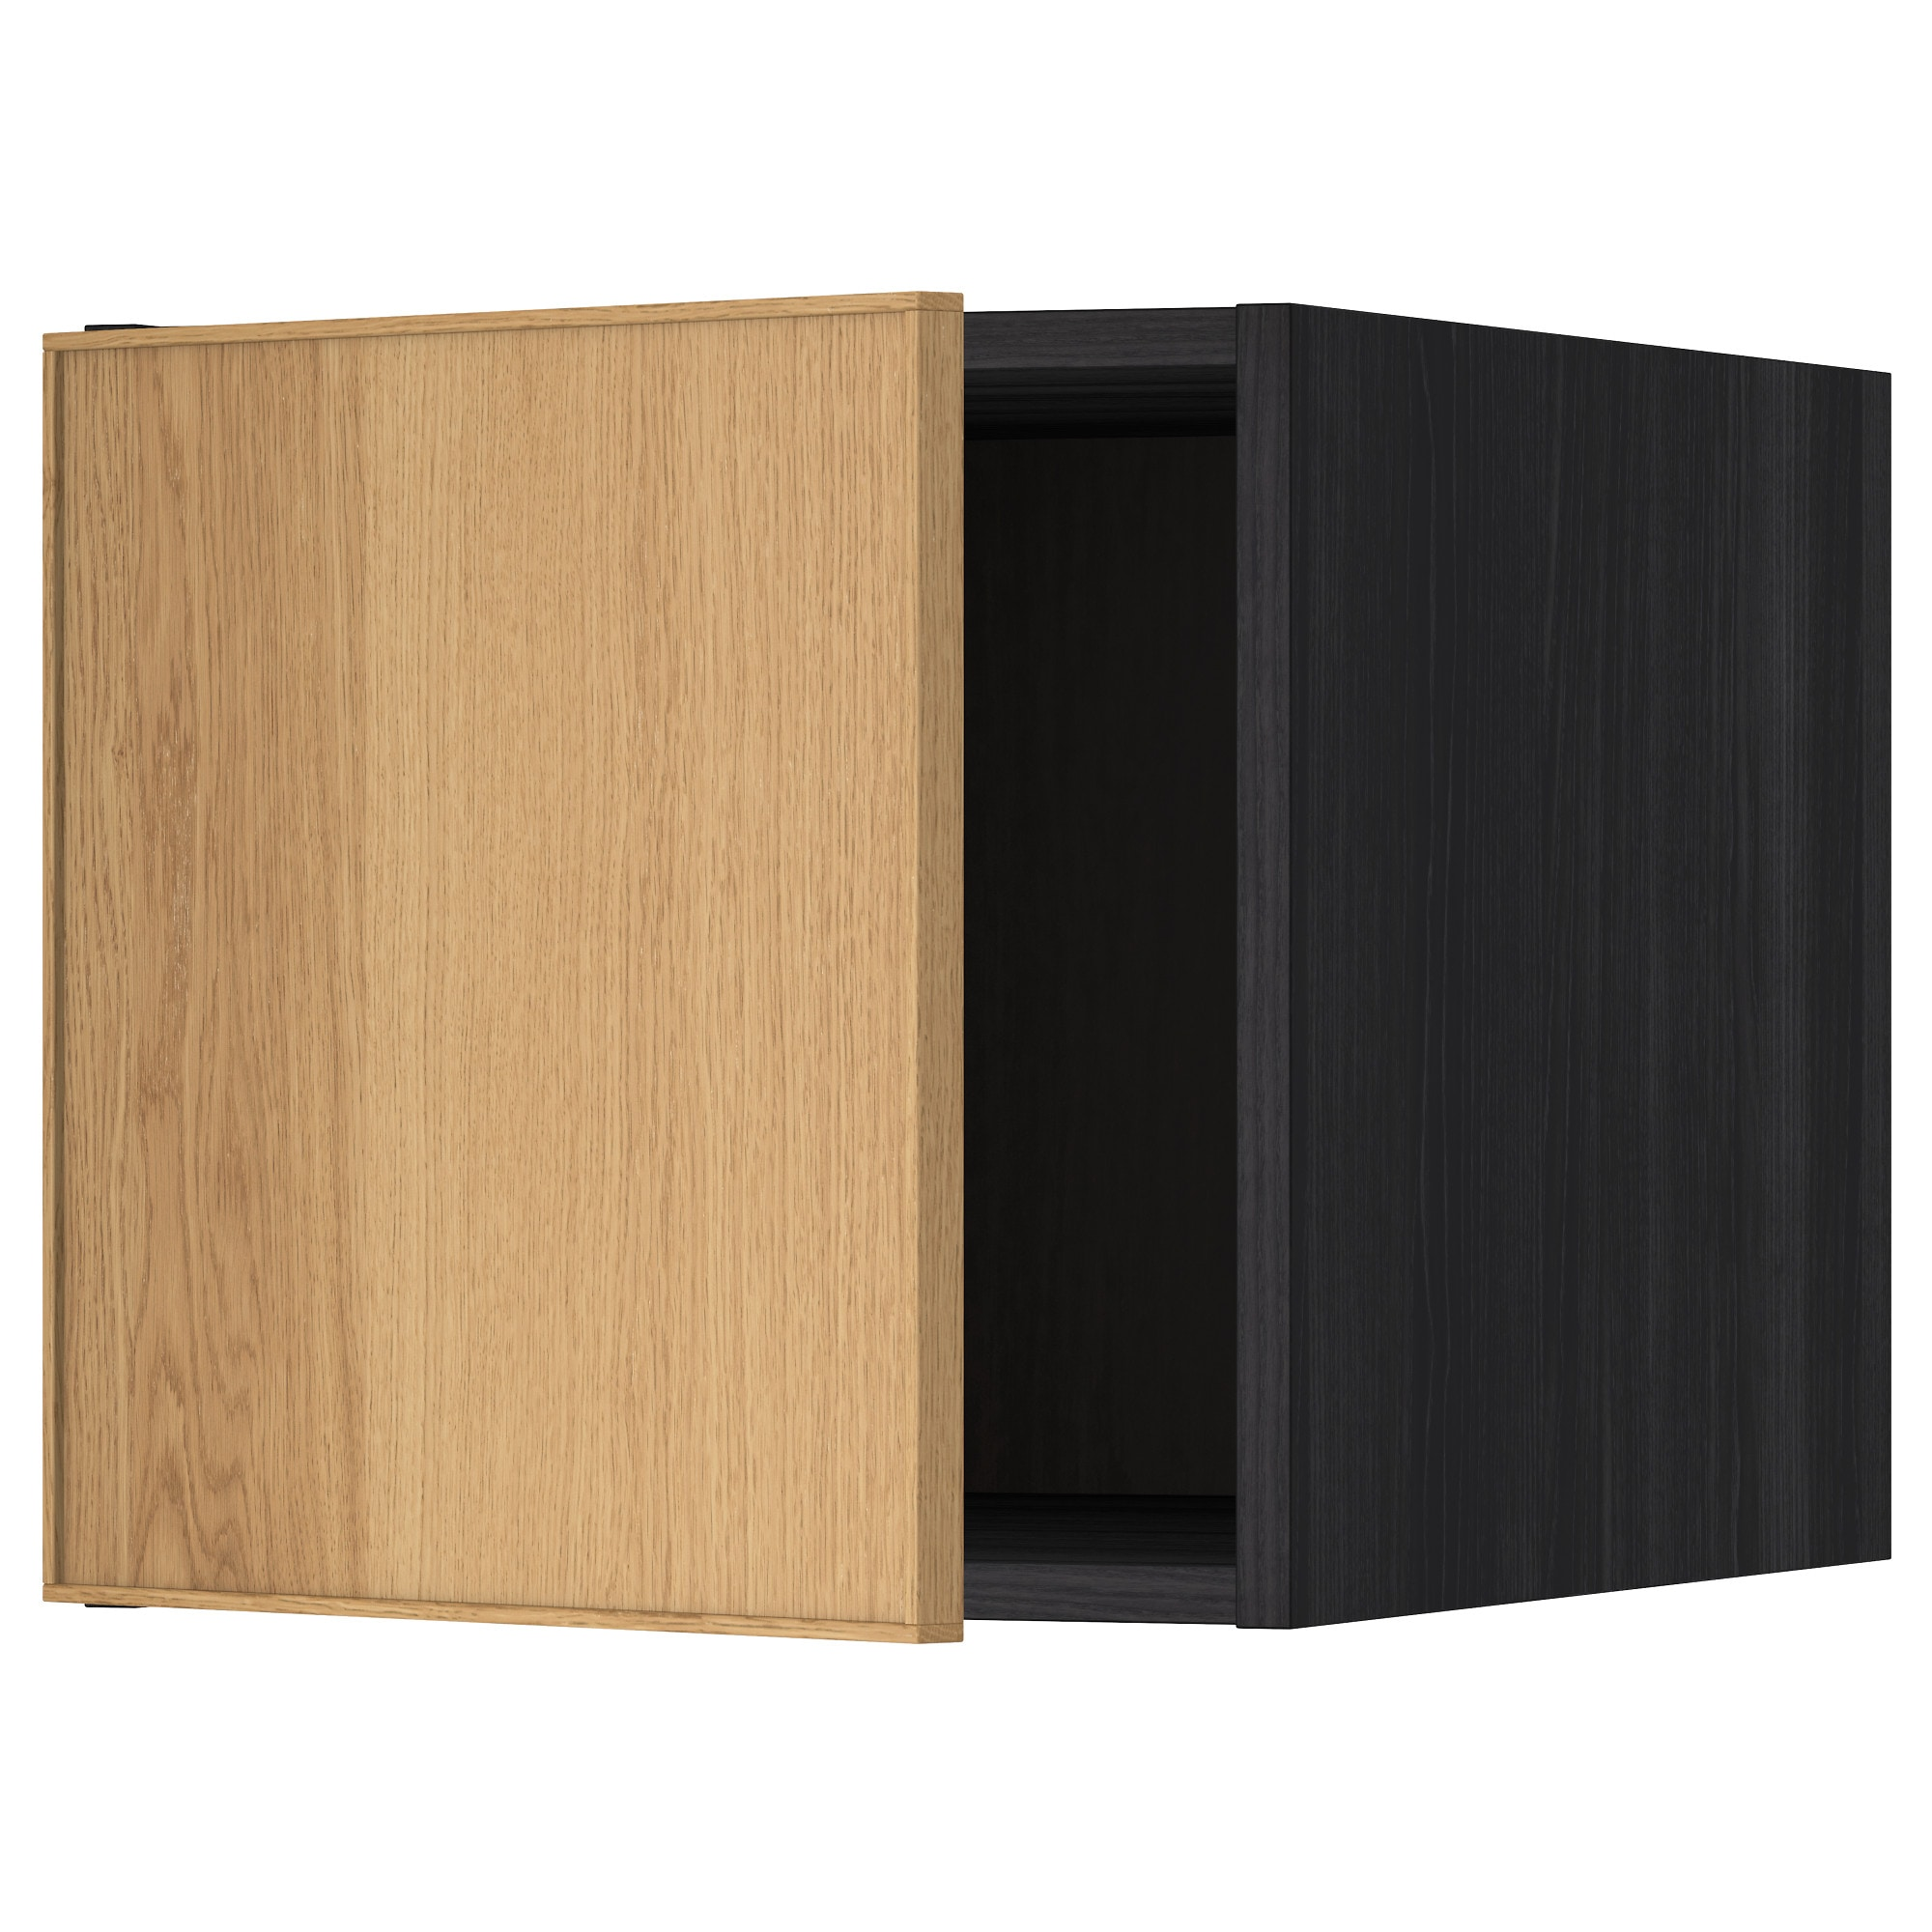 h ngeschrank k che ikea swalif. Black Bedroom Furniture Sets. Home Design Ideas